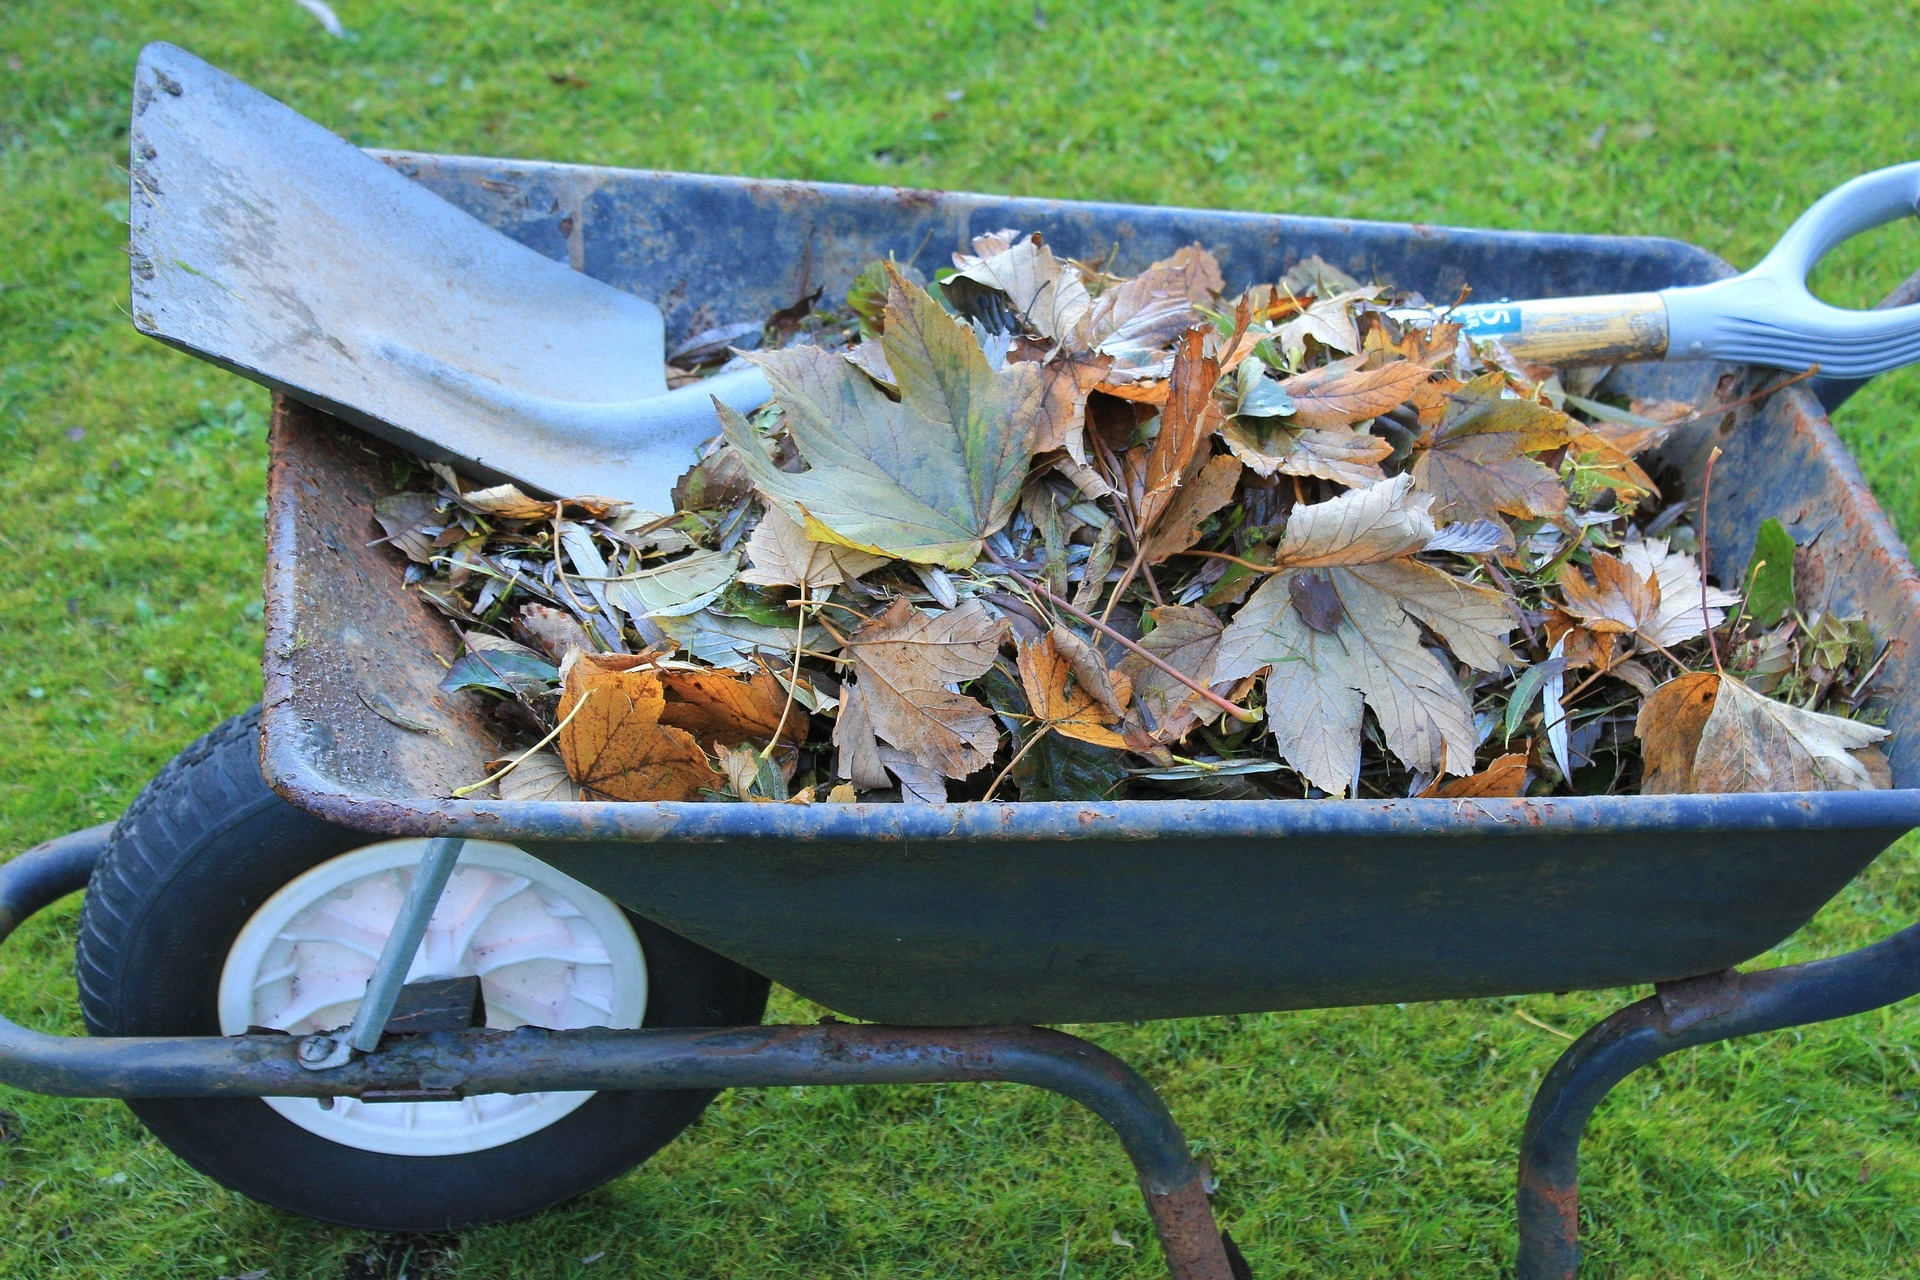 Garden waste collections have resumed